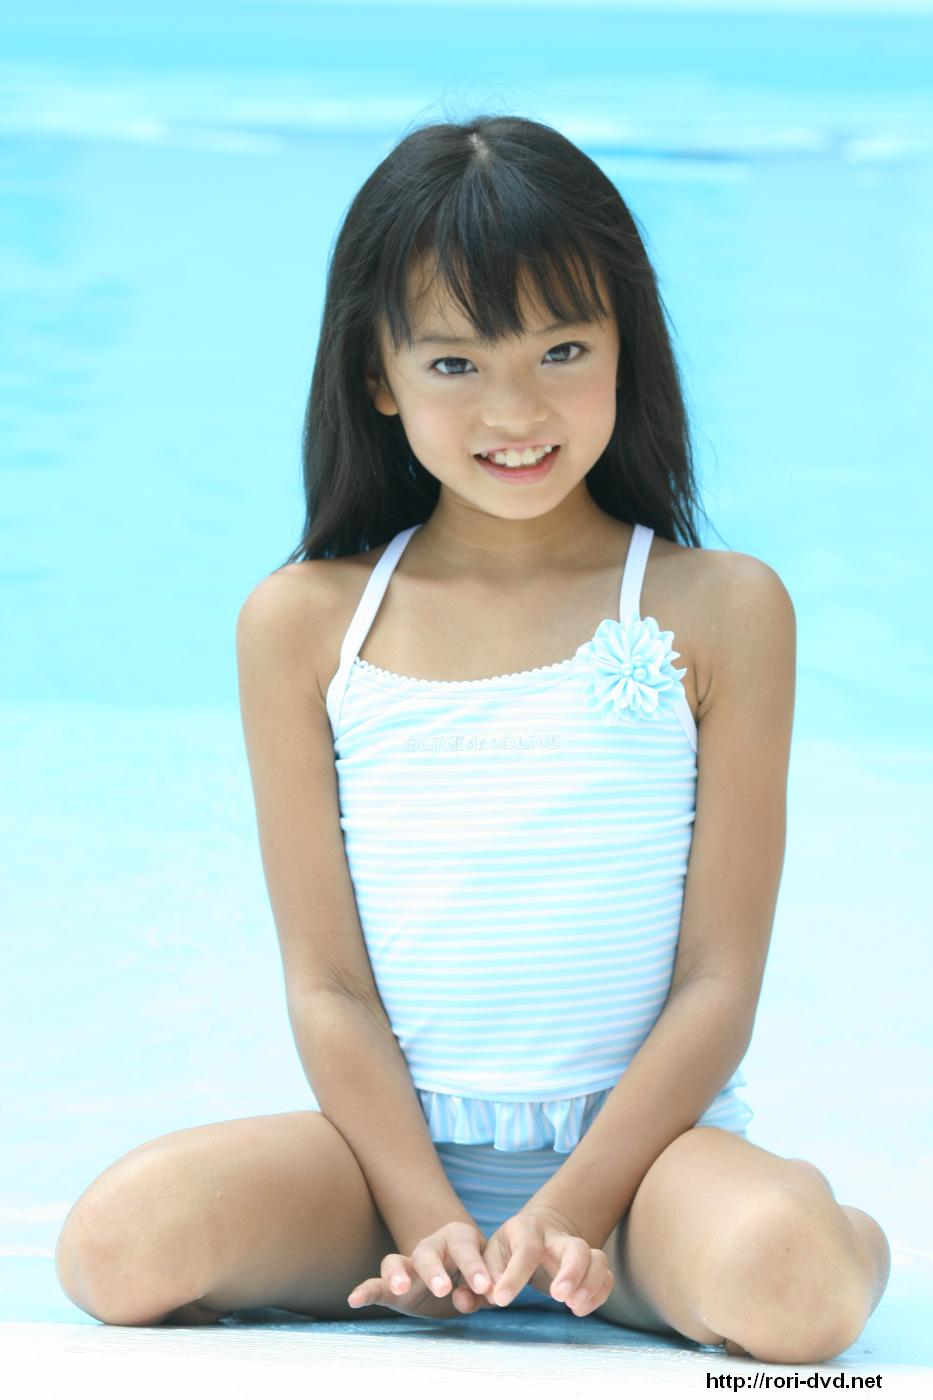 Japanese Pre Teen Model Photos Pretens Models Nude Picture.